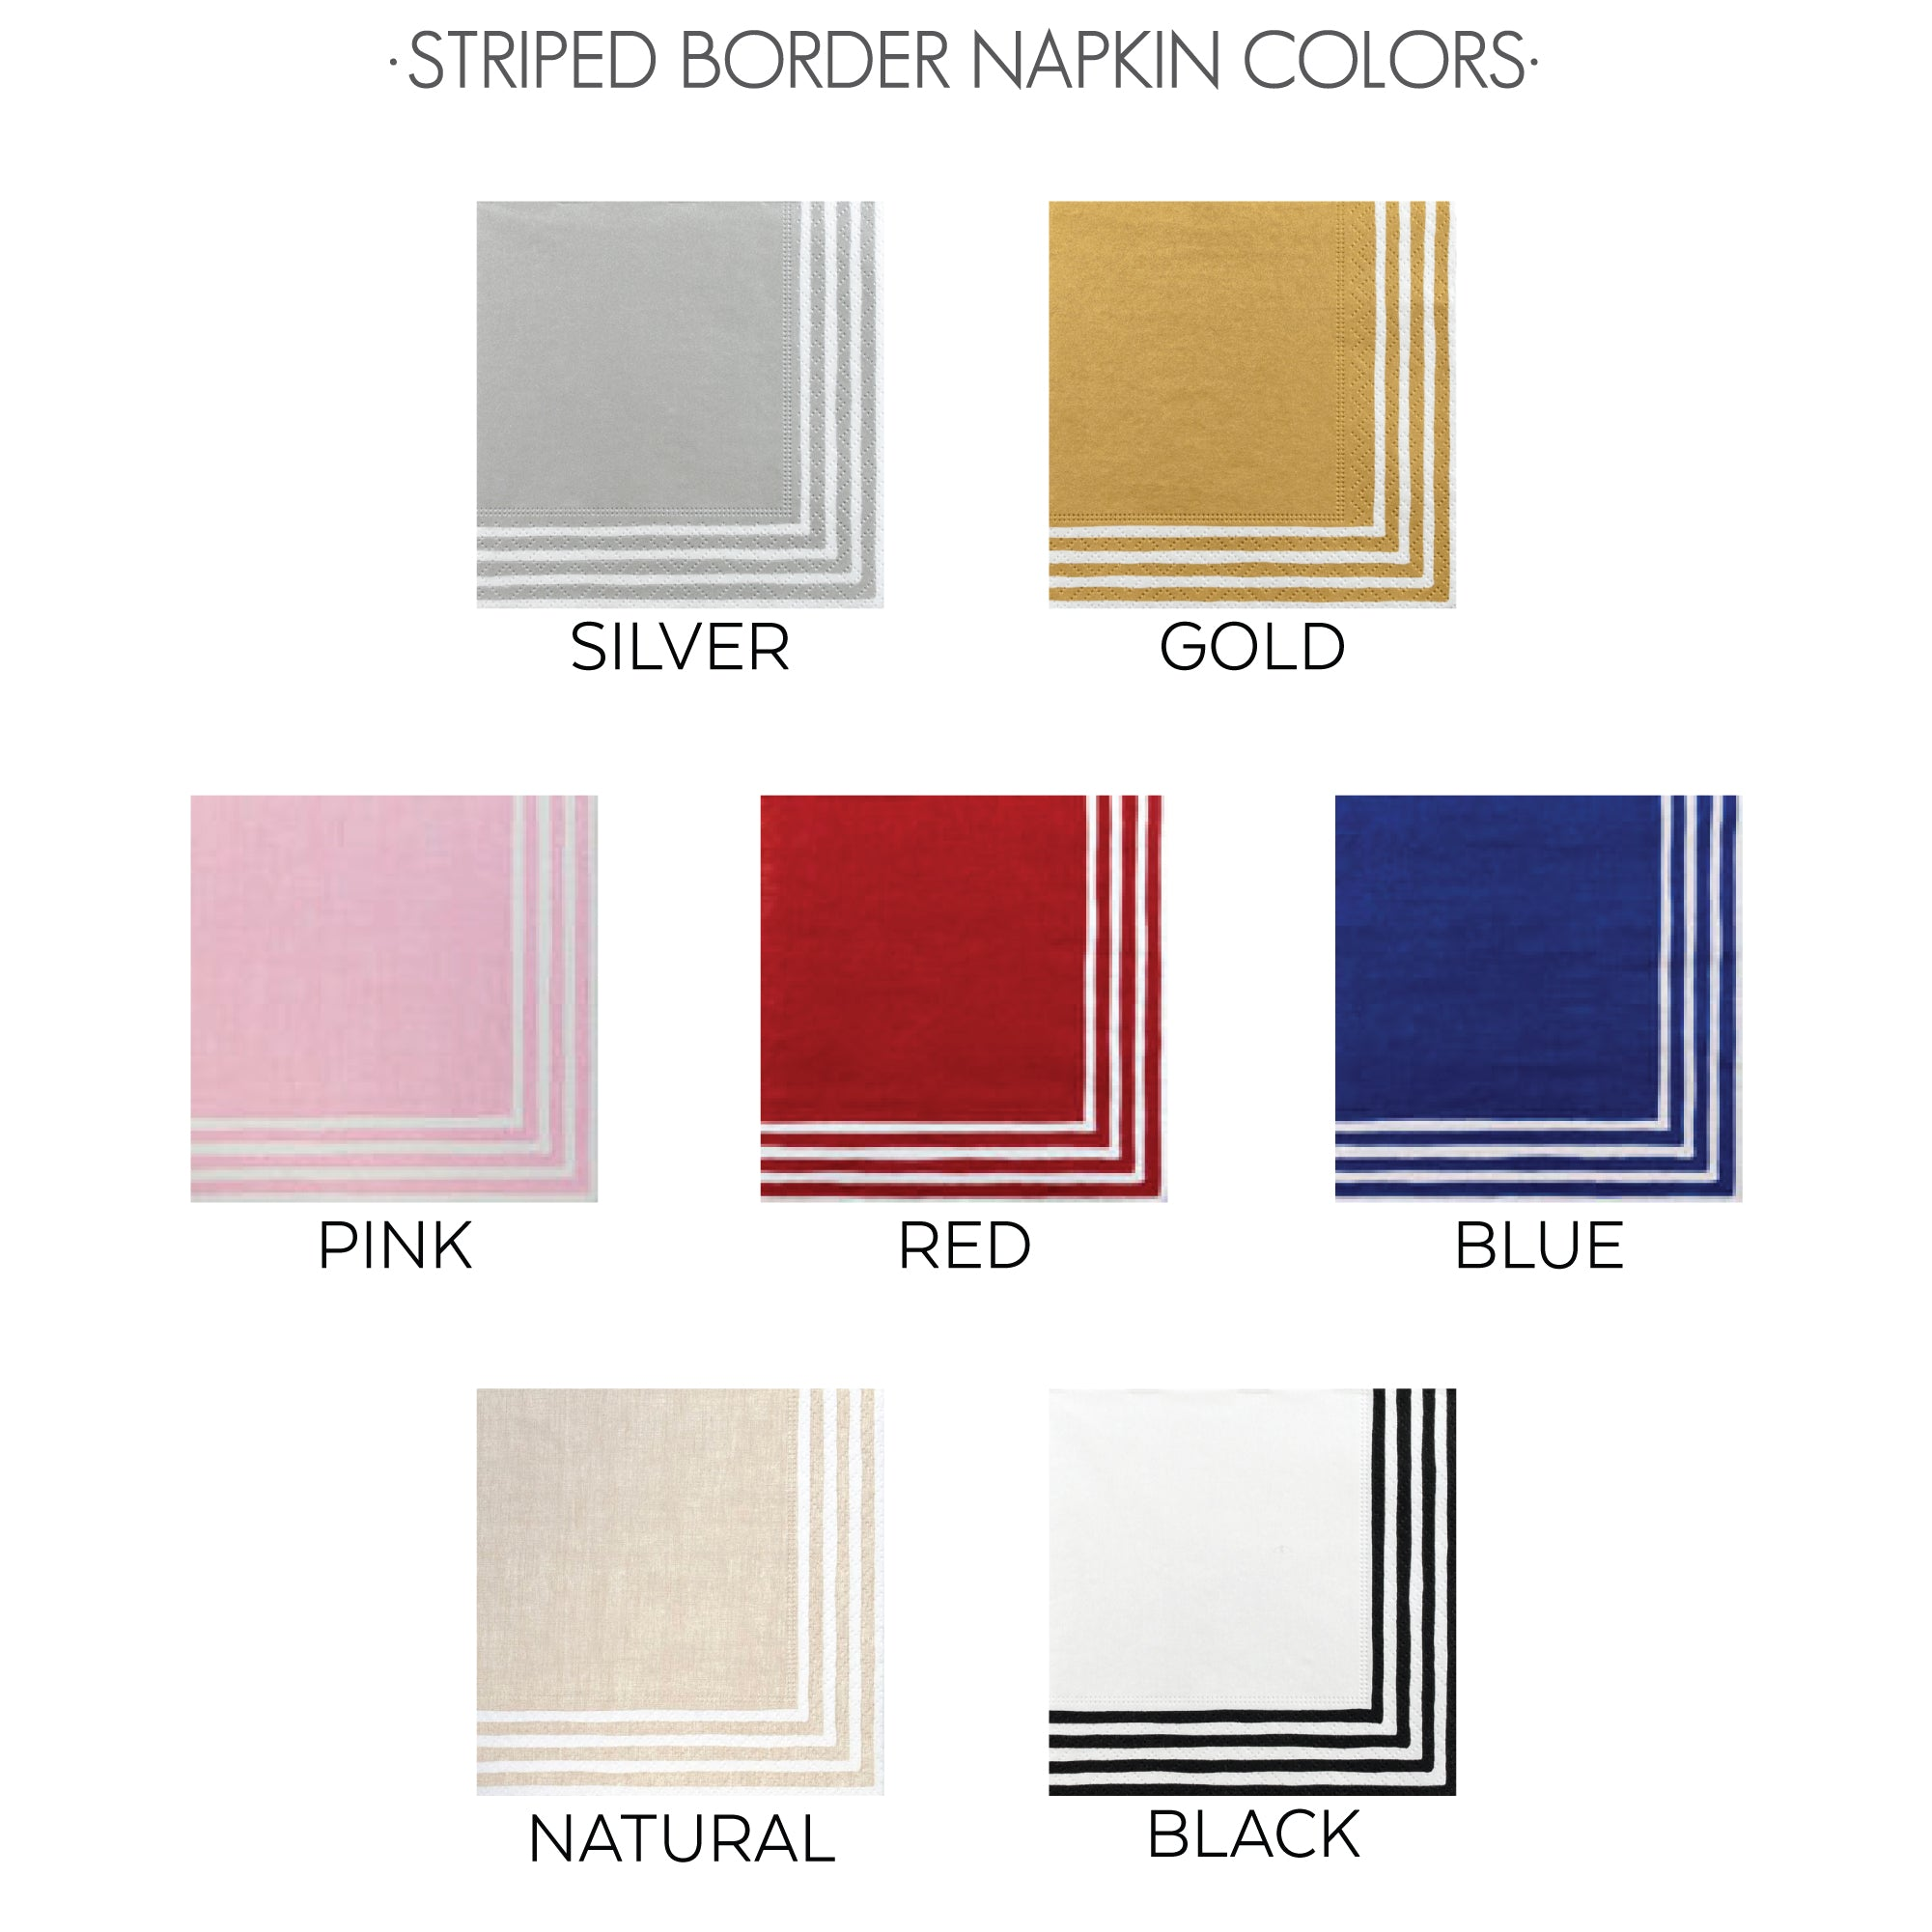 Striped Border Napkin Colors